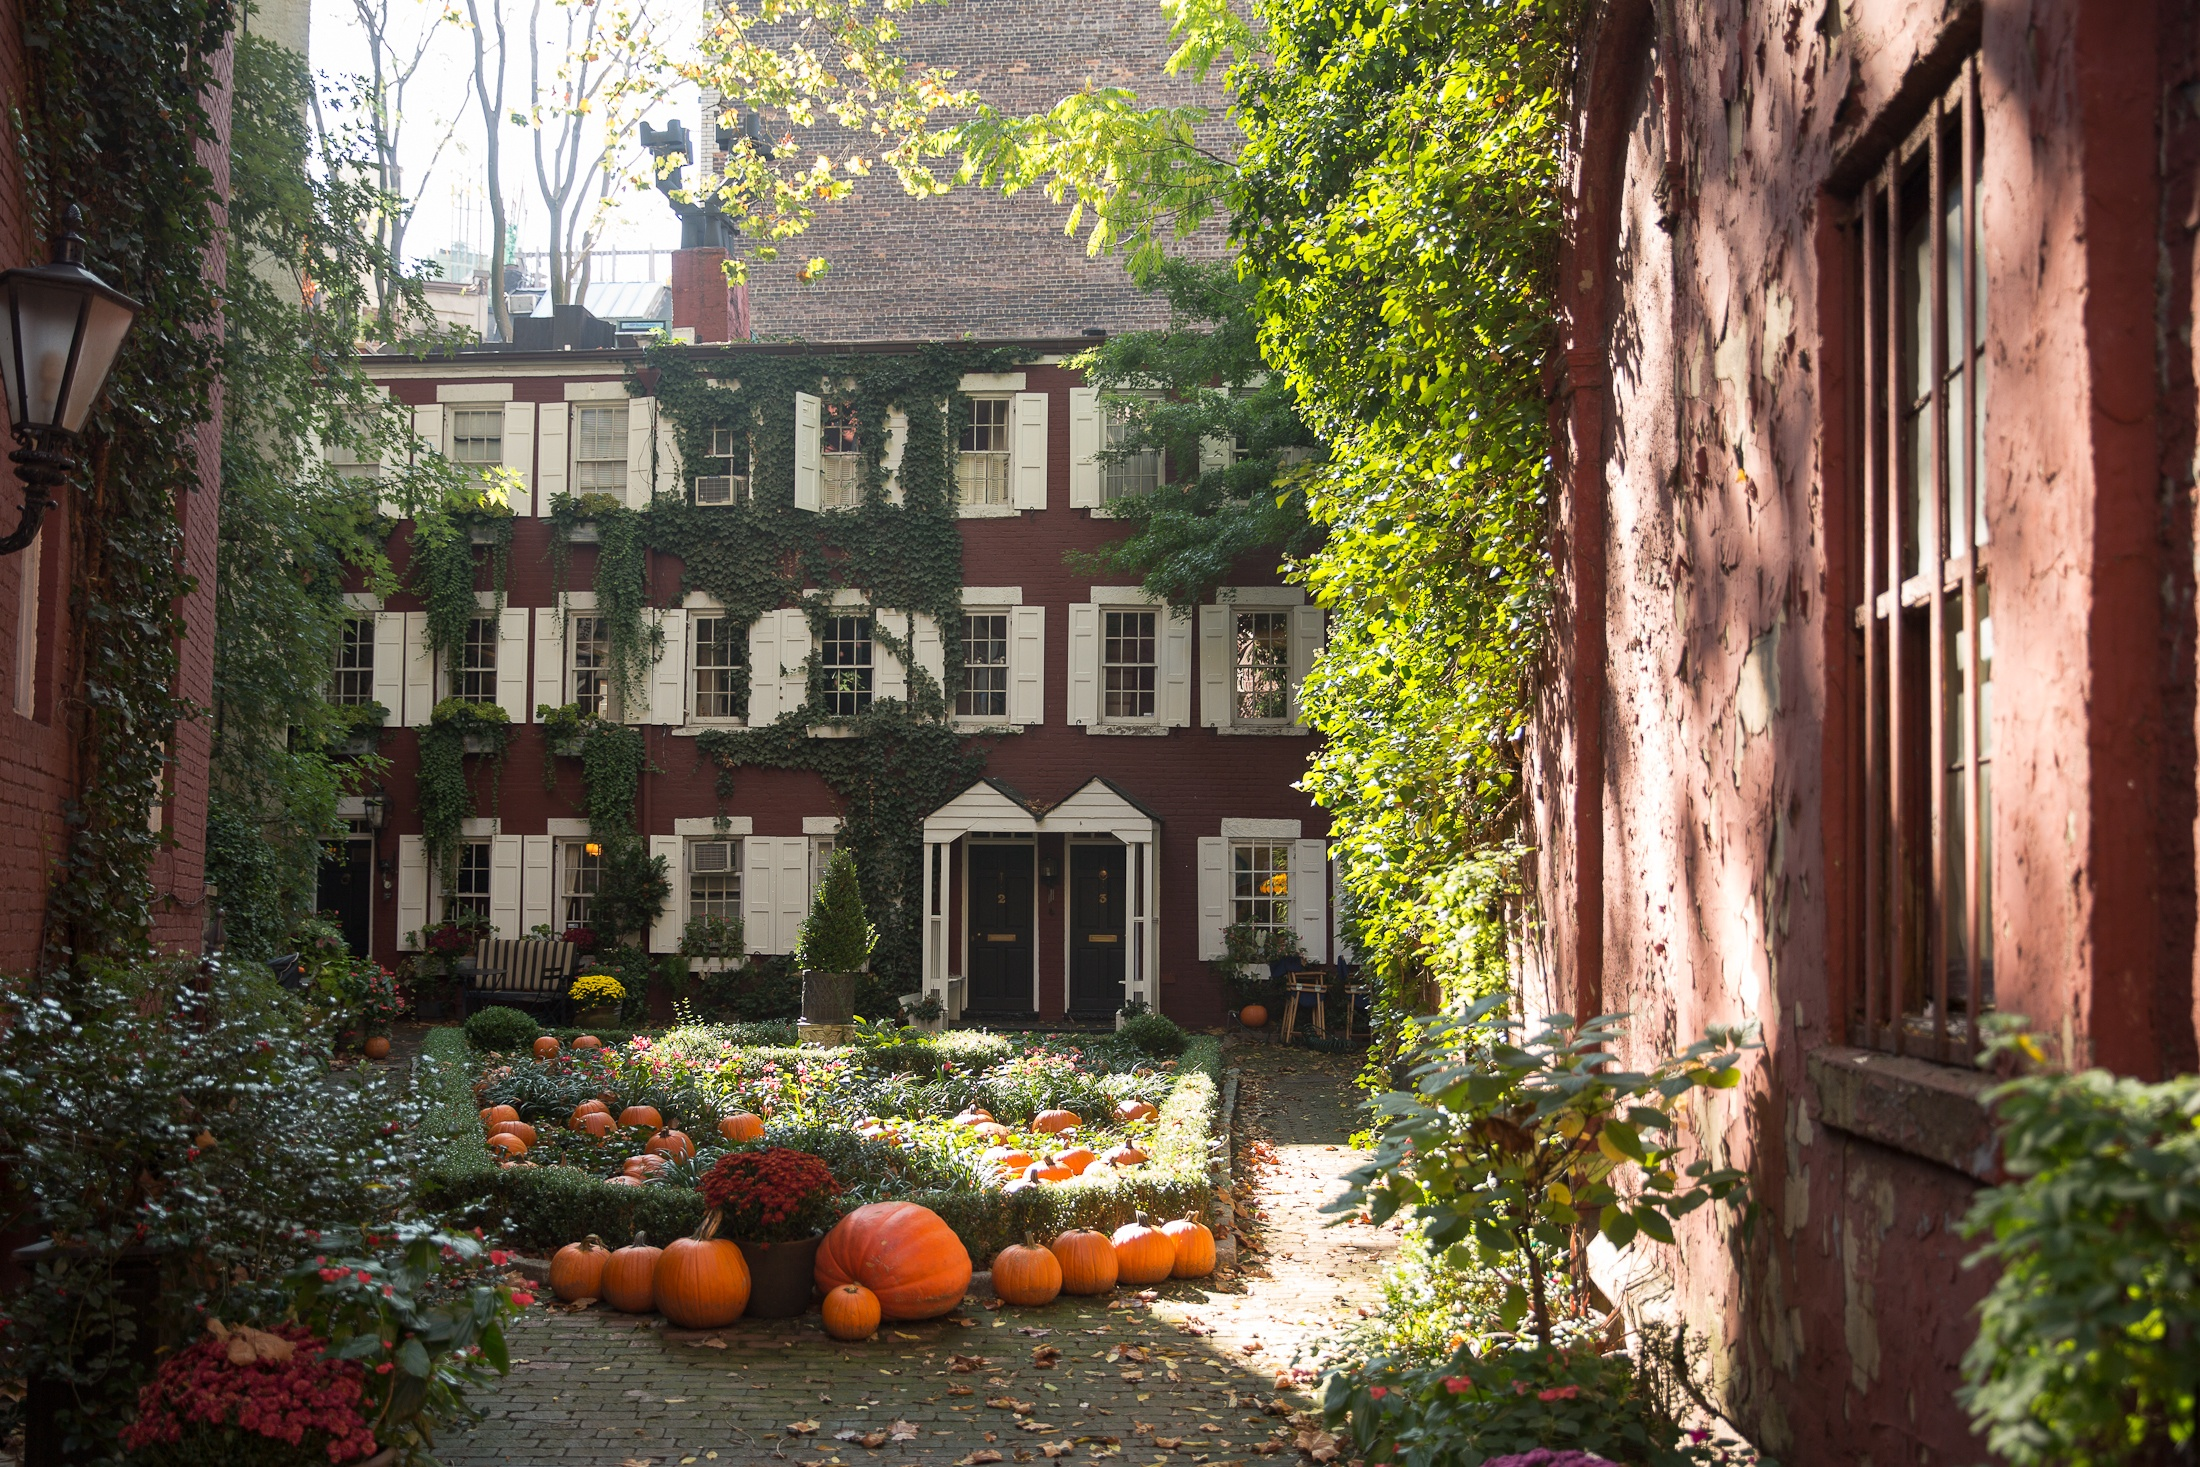 grove court street new york city nyc west village beautiful streets hidden architecture history fall pumpkins halloween shershegoes.com